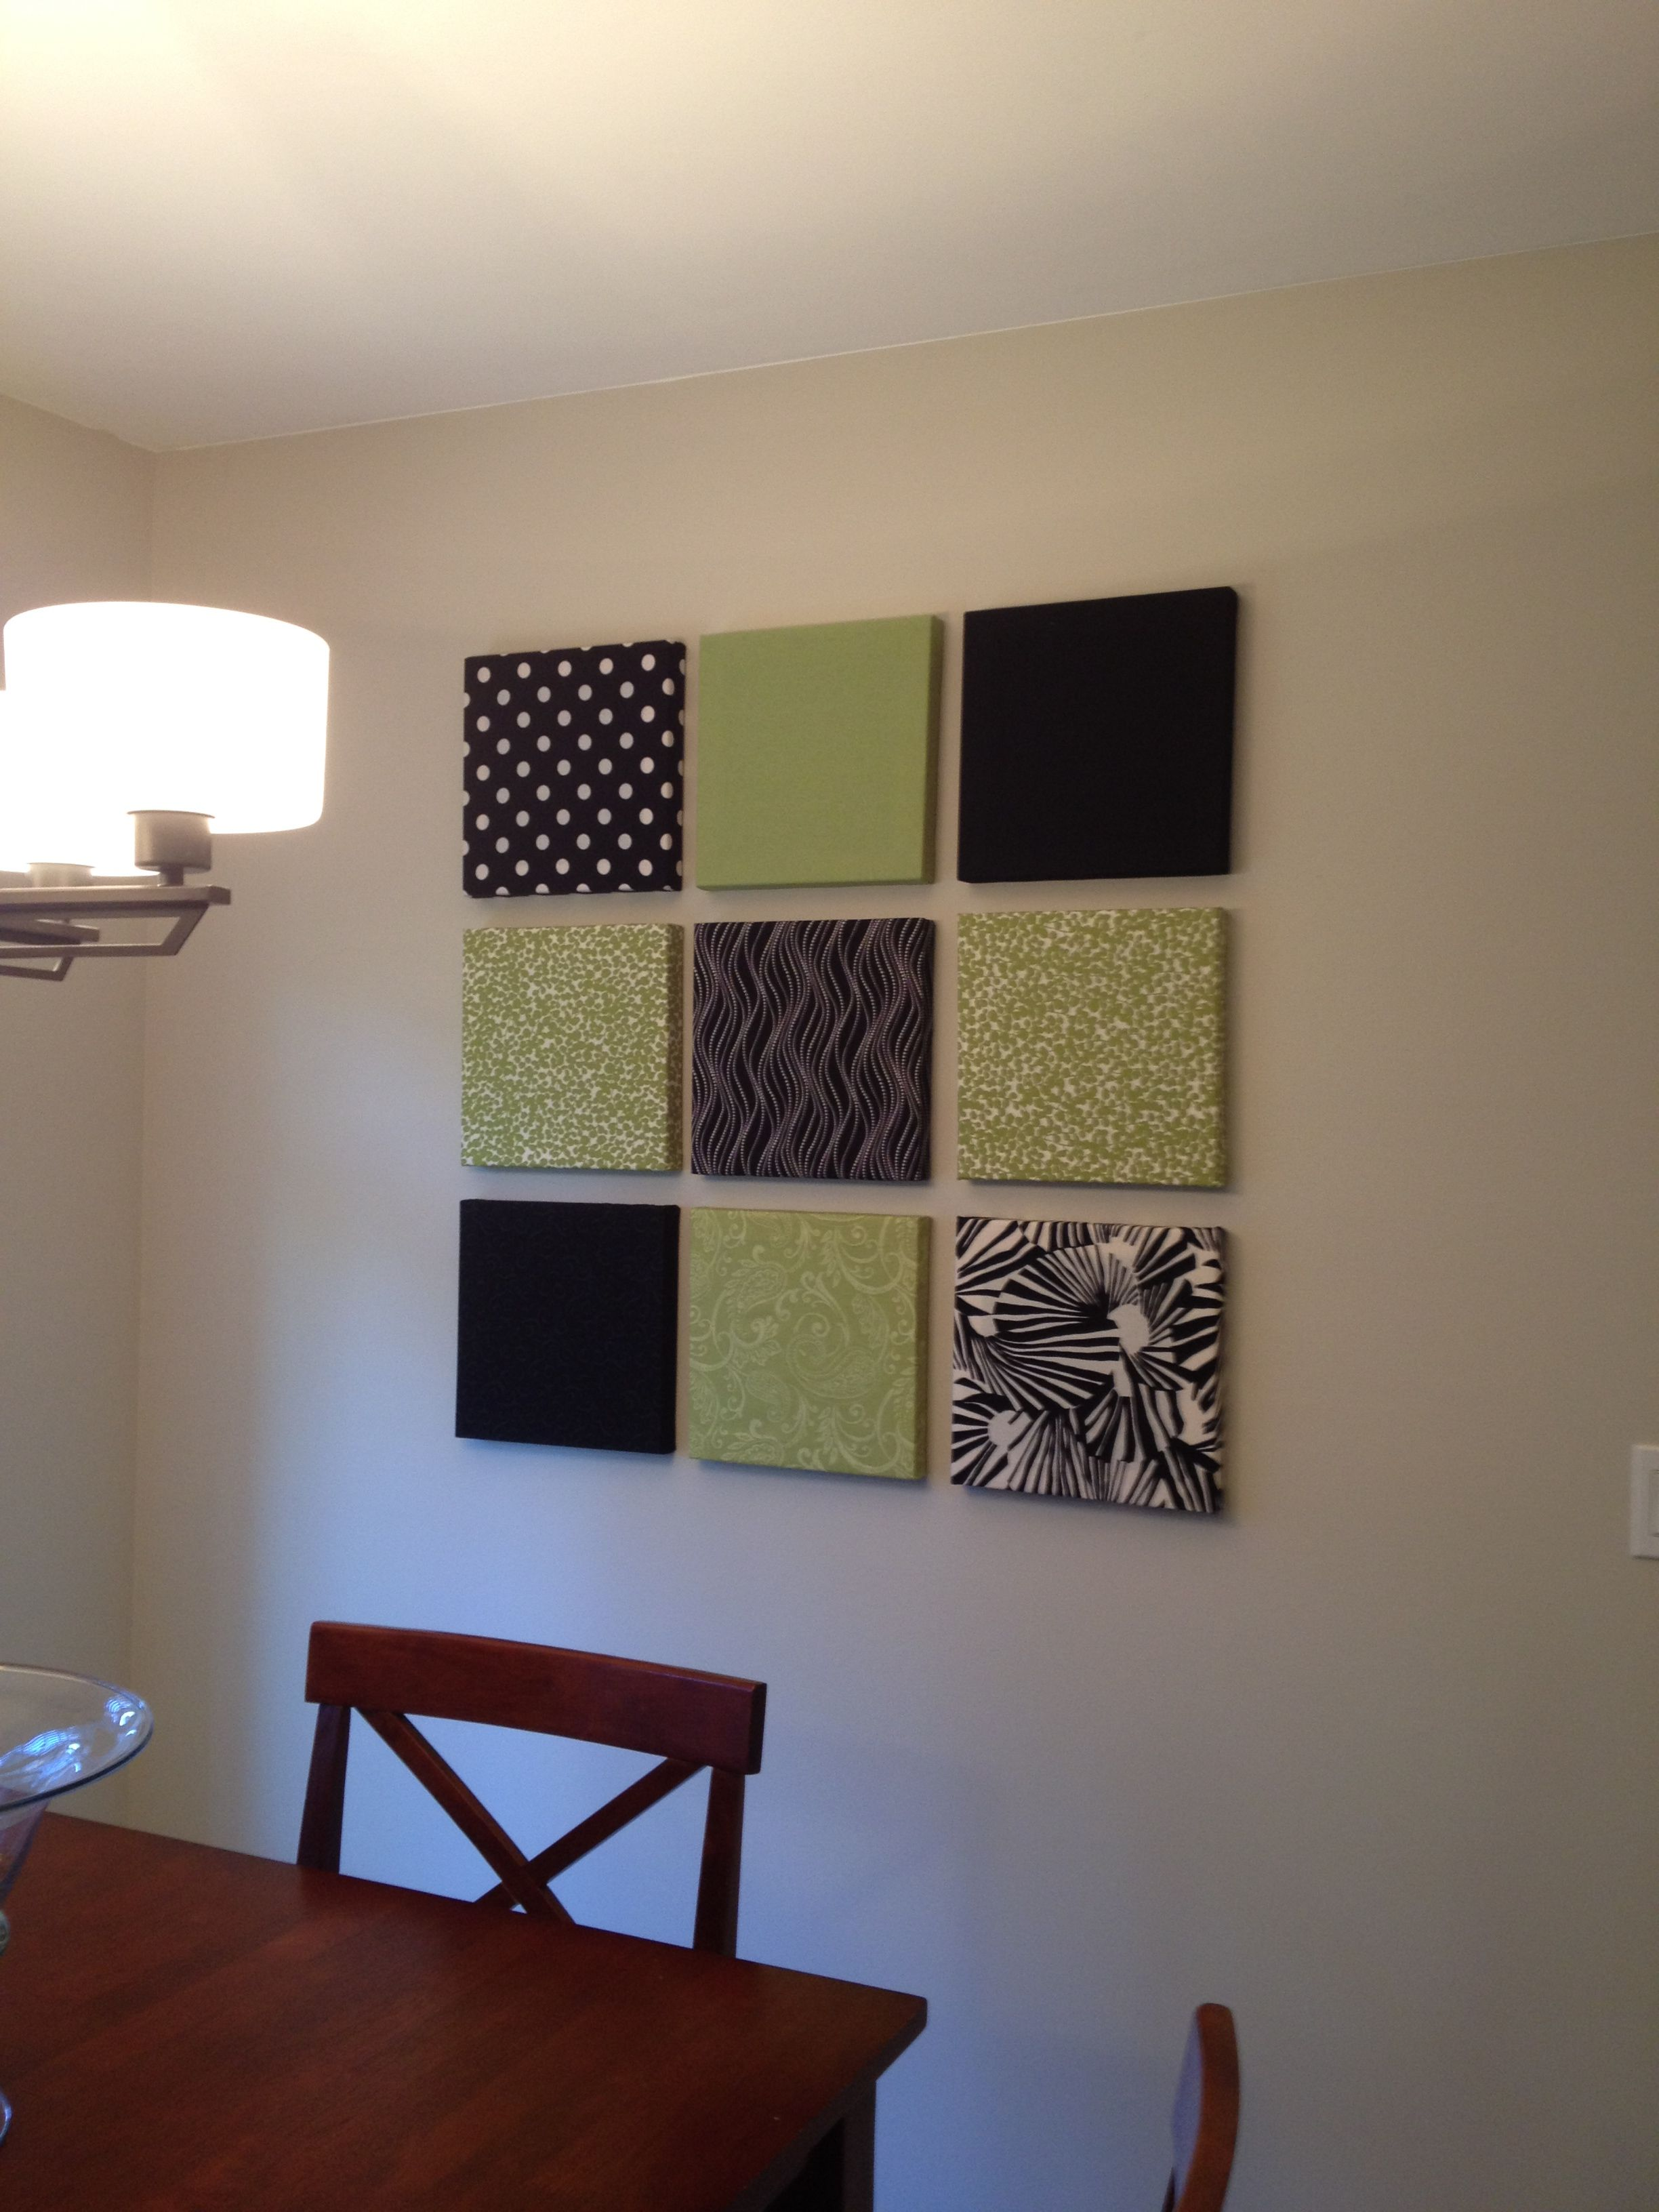 I Love My New Kitchen Wall Decor See The Inspiration Pin On For Home Board Pinterest Bedroom Cute